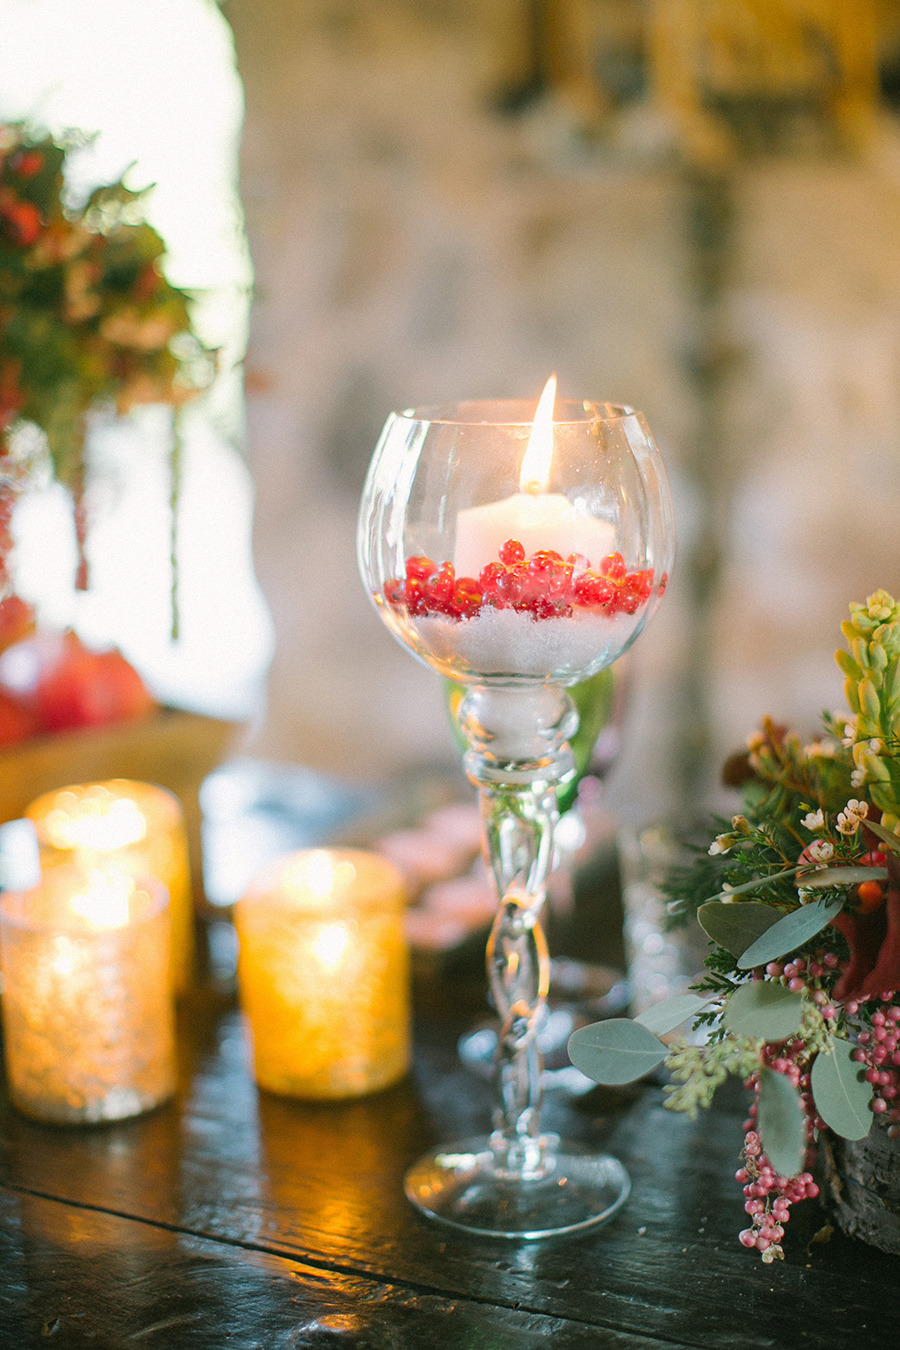 winter wedding decor - Boho Chic Wedding Inspiration Shoot from Anna Roussos Photography - annaroussos.com | Read more : https://www.fabmood.com/boho-chic-wedding-inspiration-shoot-anna-roussos-photography